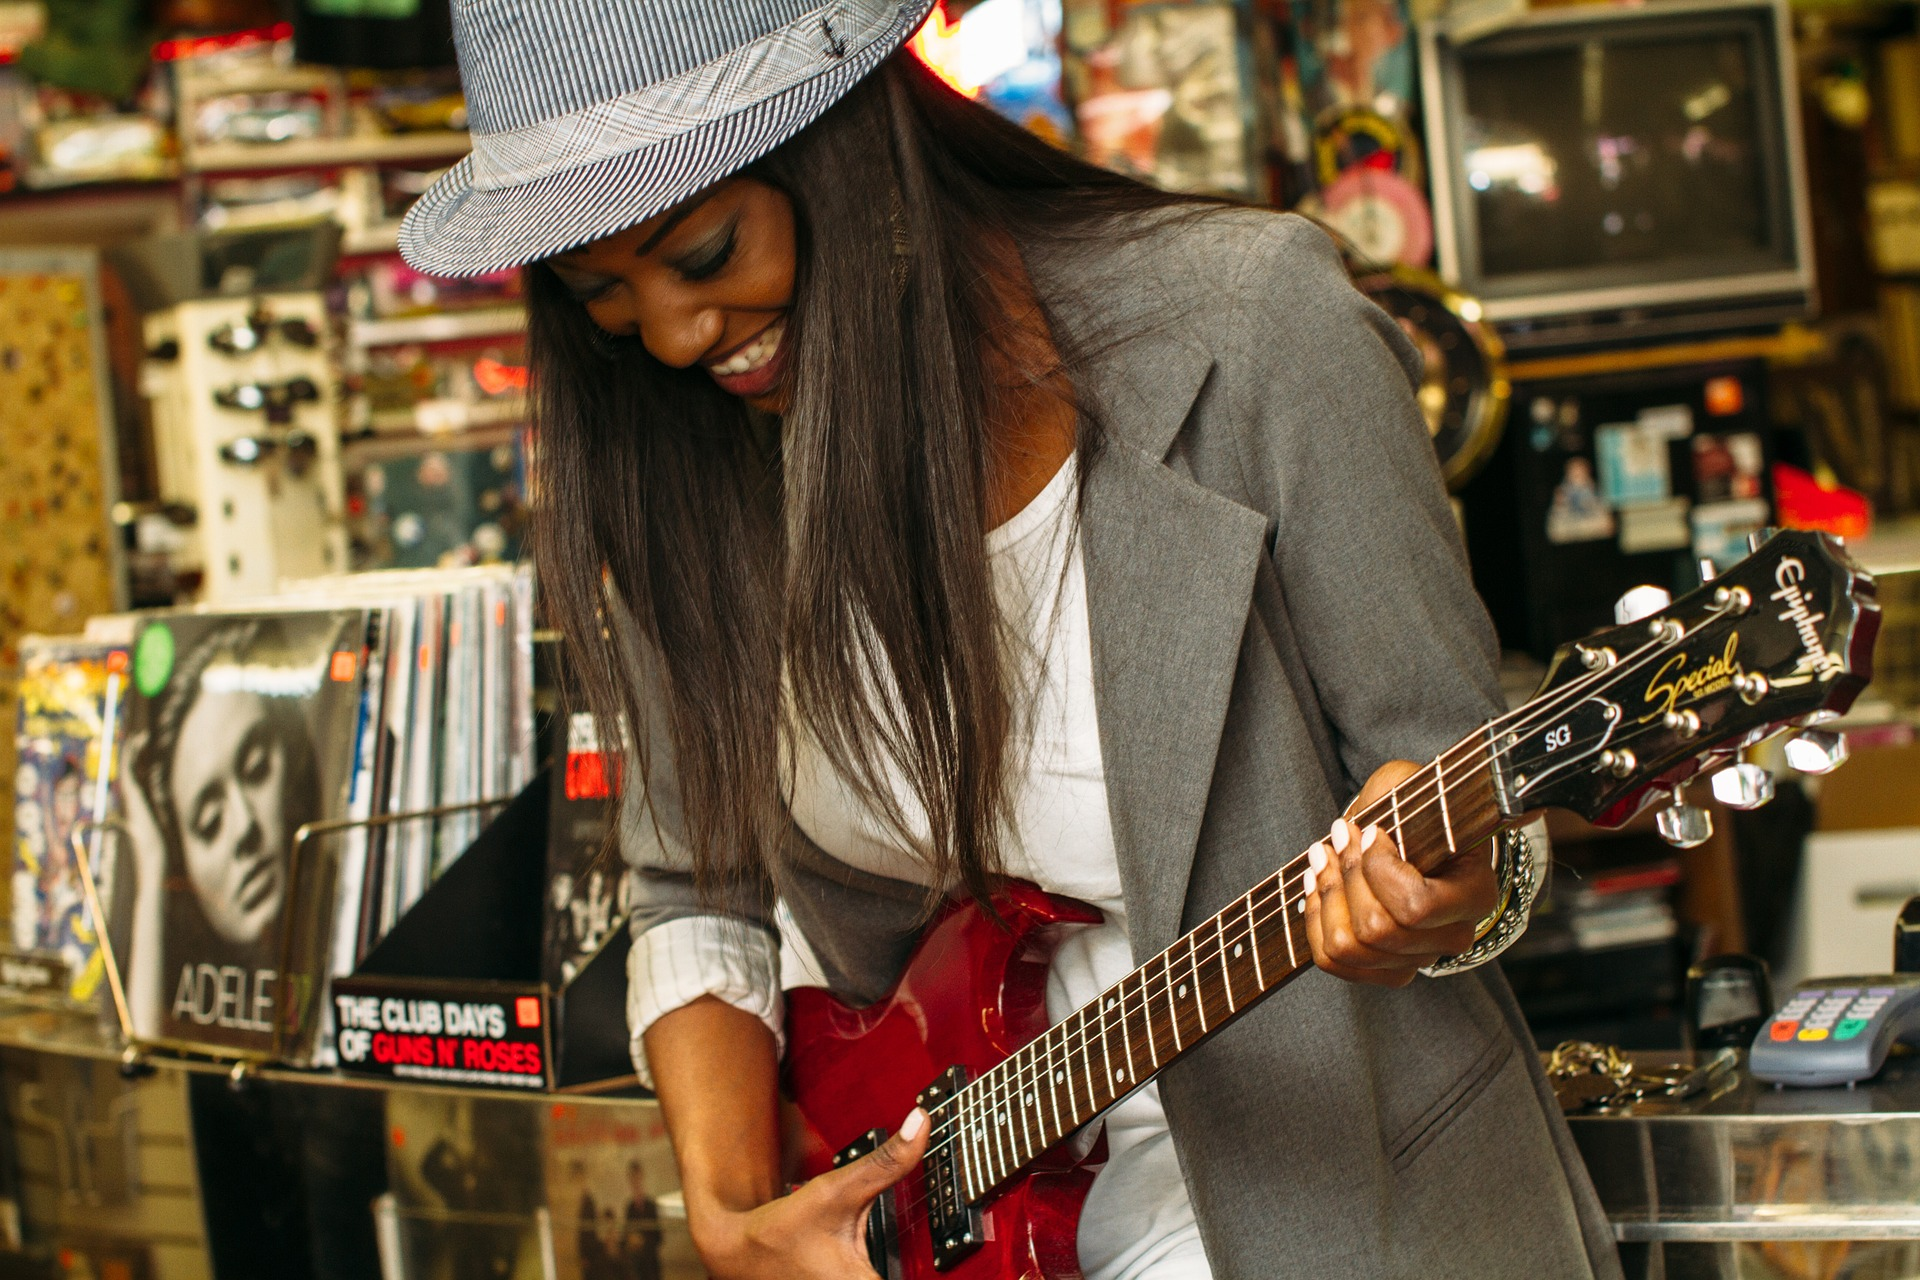 A woman with a hat playing an electric guitar.